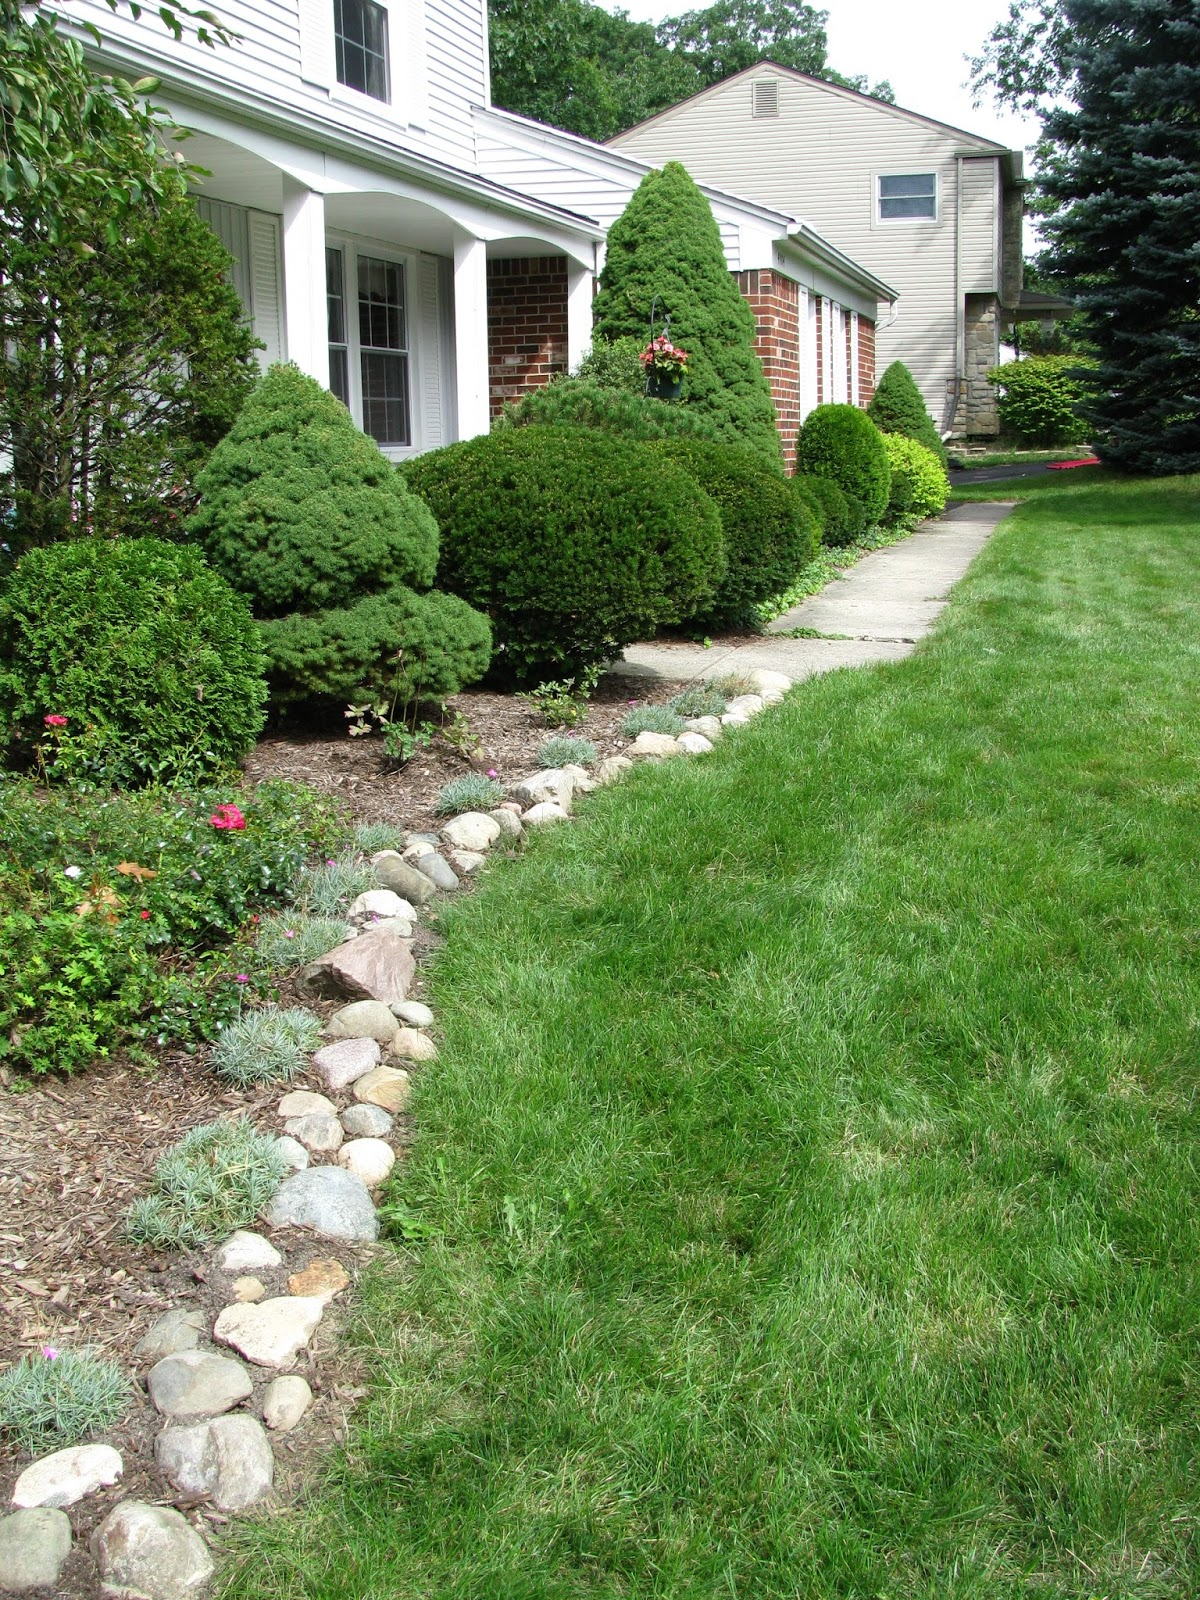 Designing Dreams on a Dime: Dream Driveway and Luxurious Landscaping